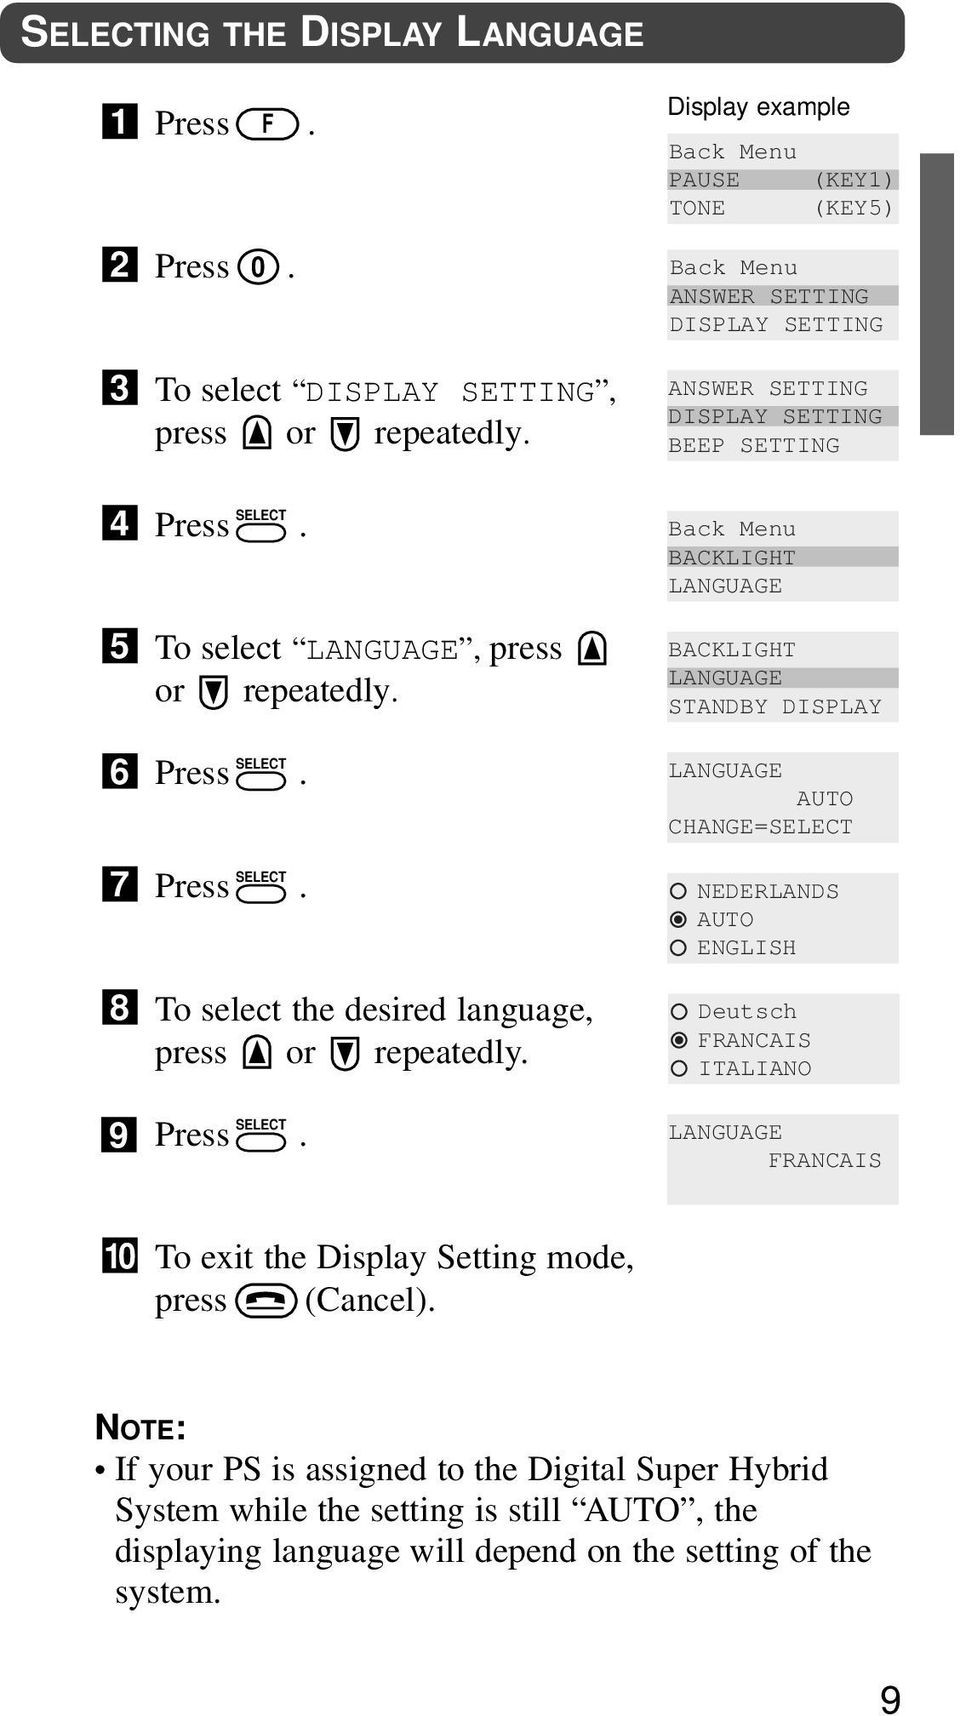 Display example Back Menu PAUSE (KEY) TONE (KEY5) Back Menu ANSWER SETTING DISPLAY SETTING ANSWER SETTING DISPLAY SETTING BEEP SETTING Back Menu BACKLIGHT LANGUAGE BACKLIGHT LANGUAGE